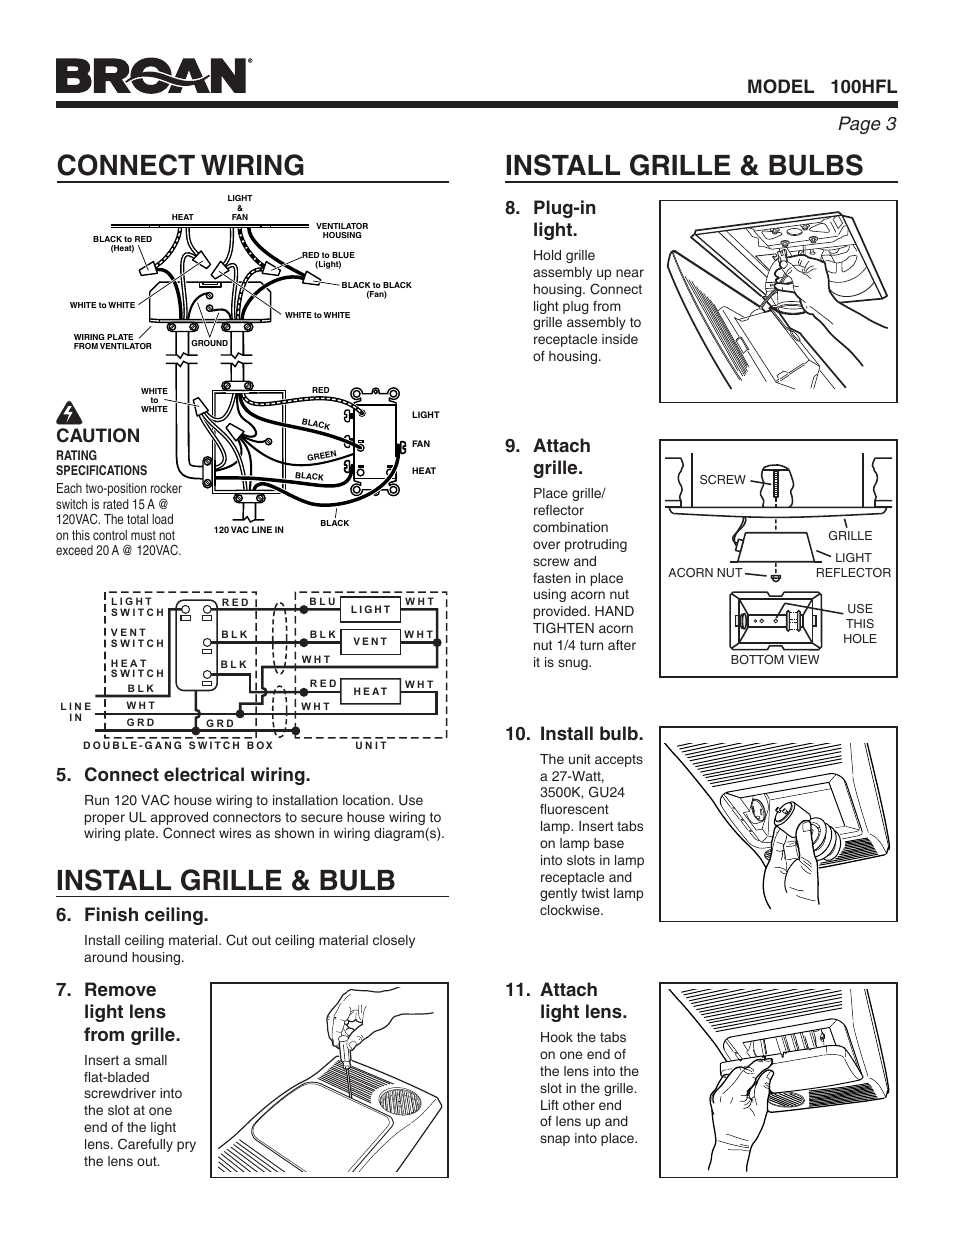 Install Grille Bulbs Connect Wiring Bulb Blower Fan Diagram For Light Broan Ventilation With And Heater 100hfl User Manual Page 3 8